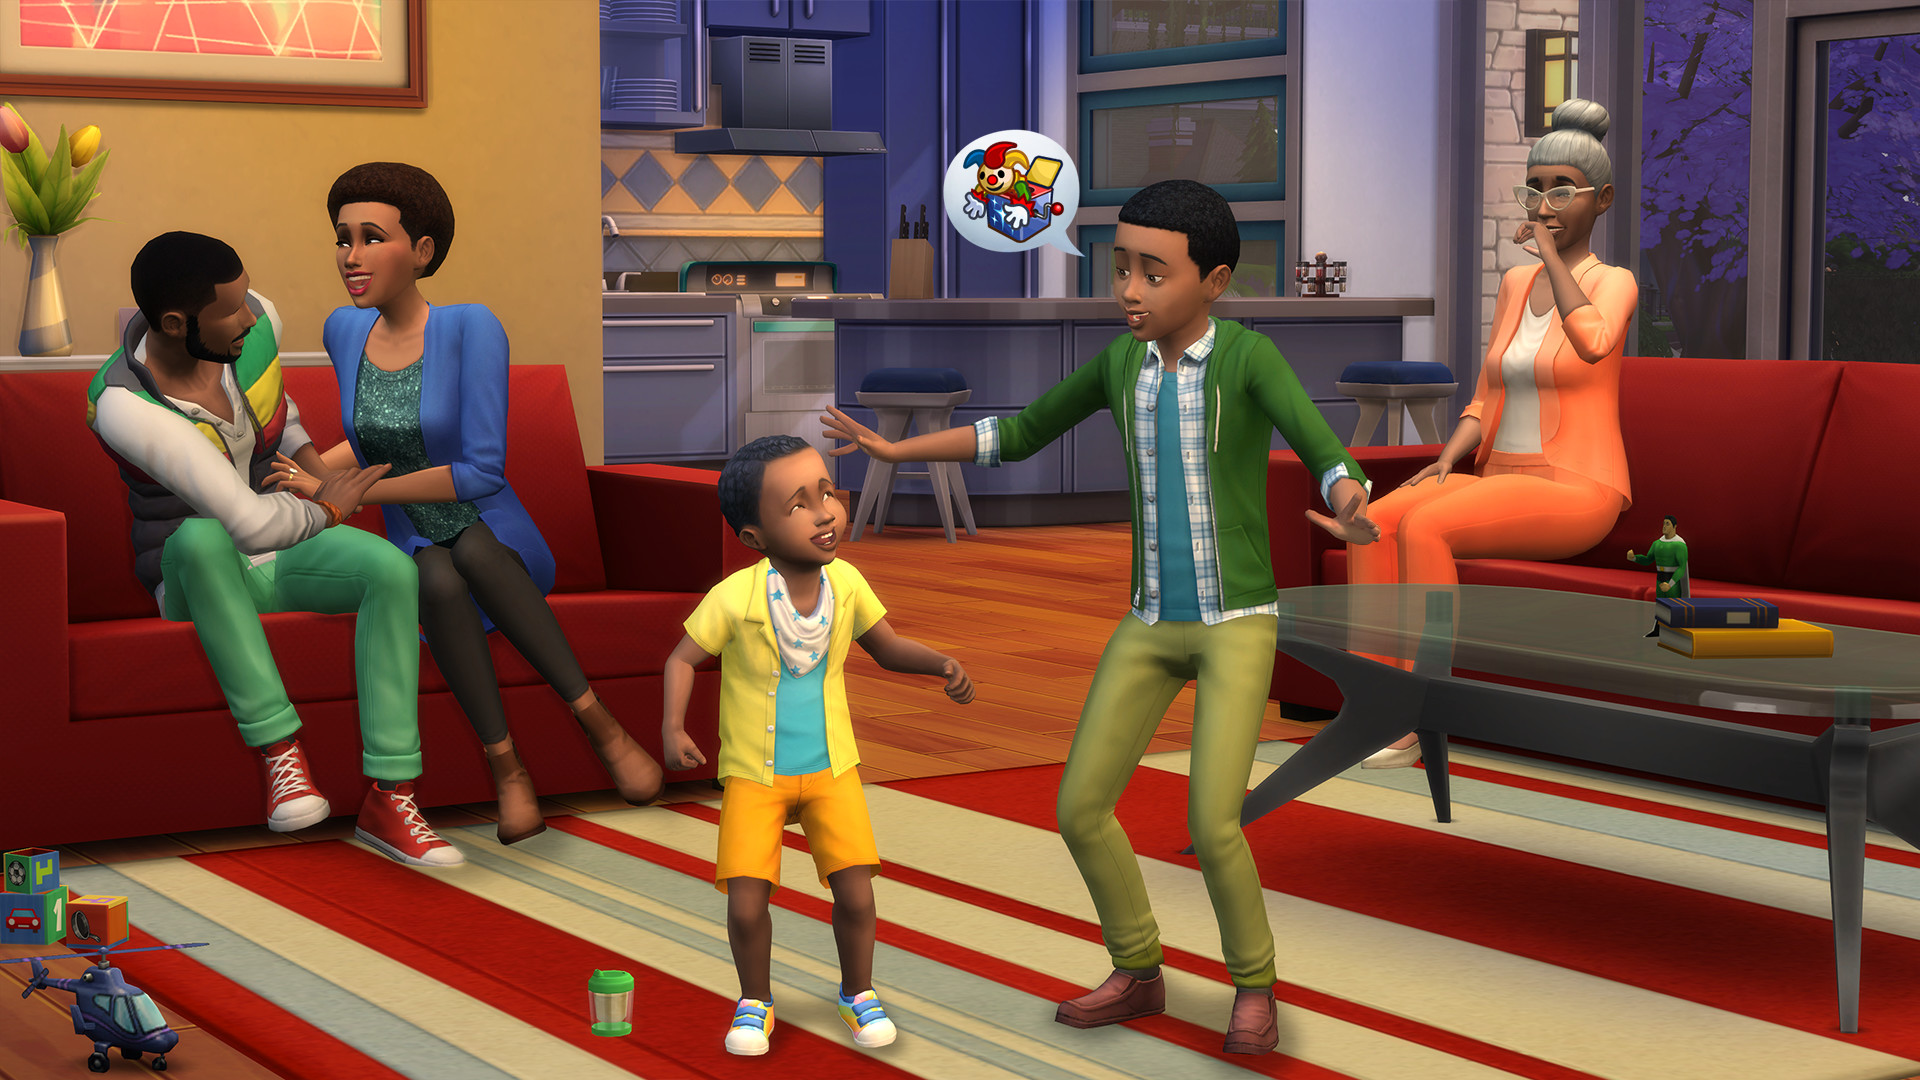 The sims 4 demo mac download free